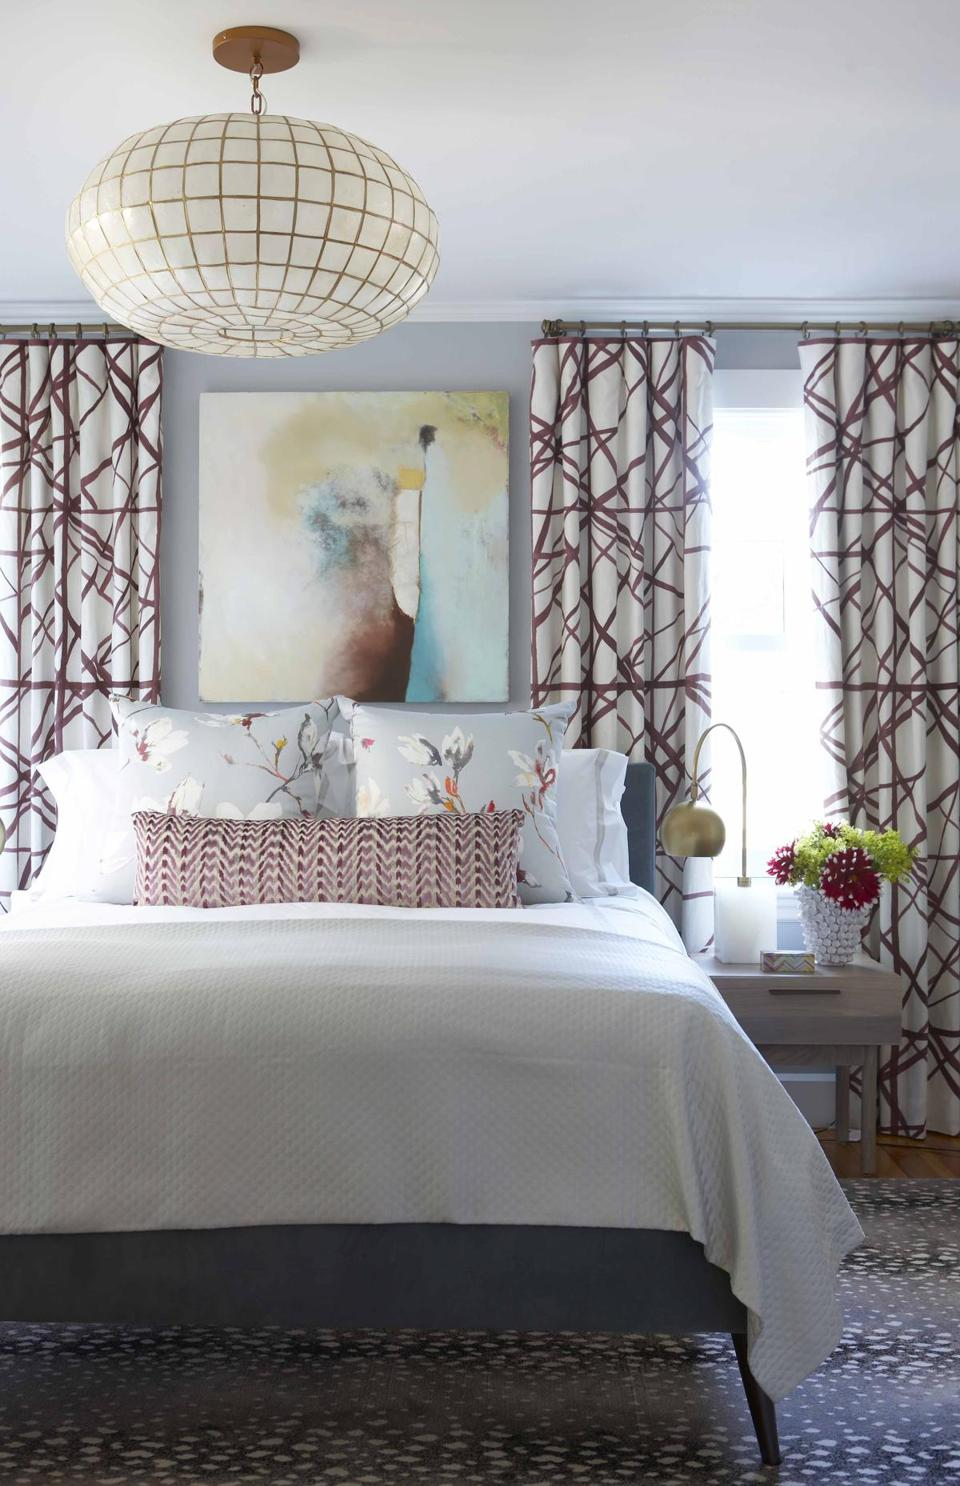 In the master bedroom, maroon-and-white patterned drapes by Kelly Wearstler for Lee Jofa add modern flair. An antelope-print rug from Landry & Arcari feels lush underfoot; the bold Capiz-shell-and-brass light fixture is by Serena & Lily.